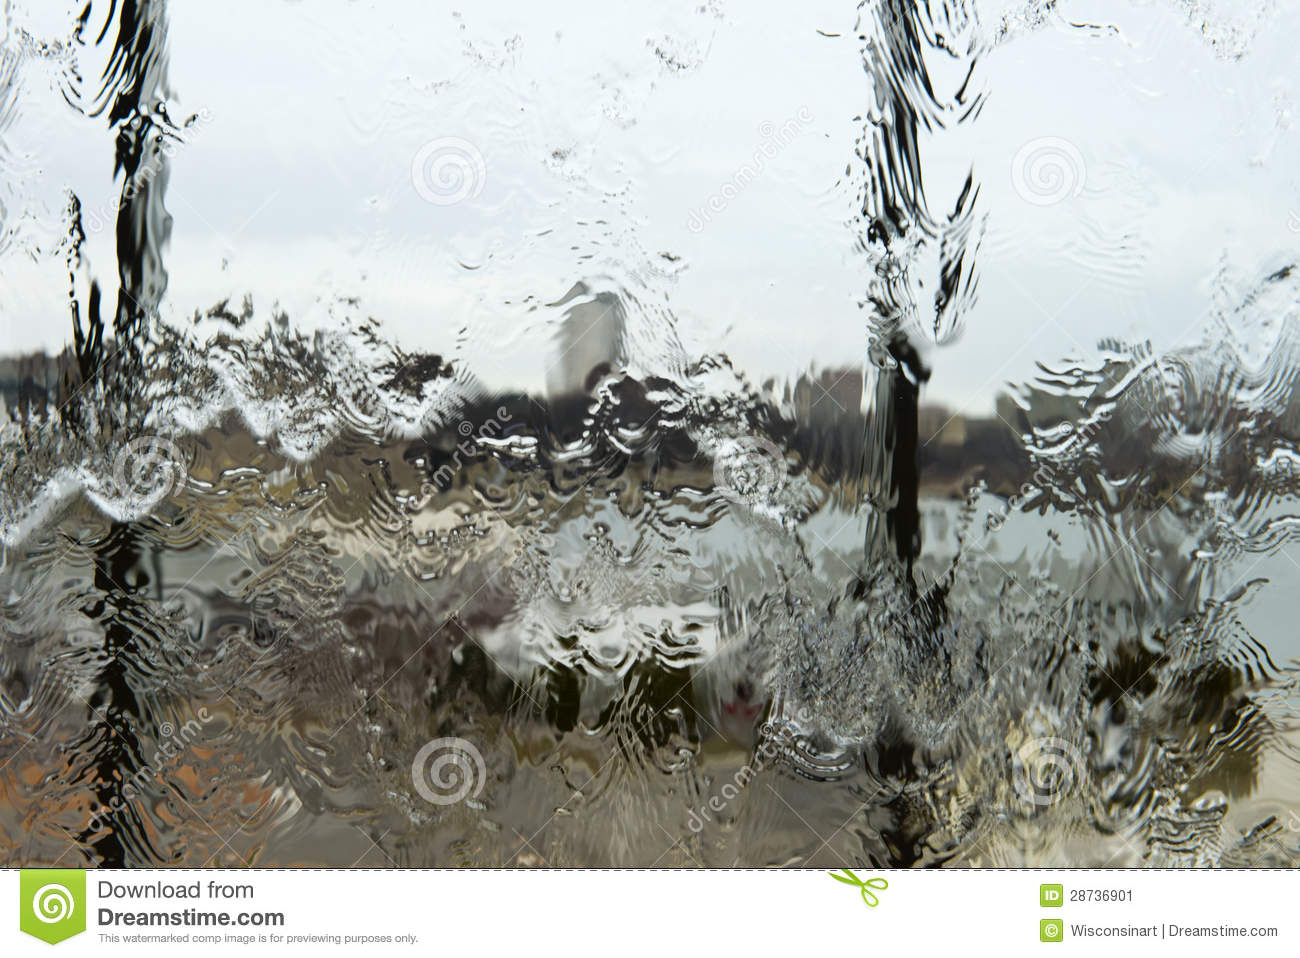 Abstract Rain Water on Glass Window Background Concept